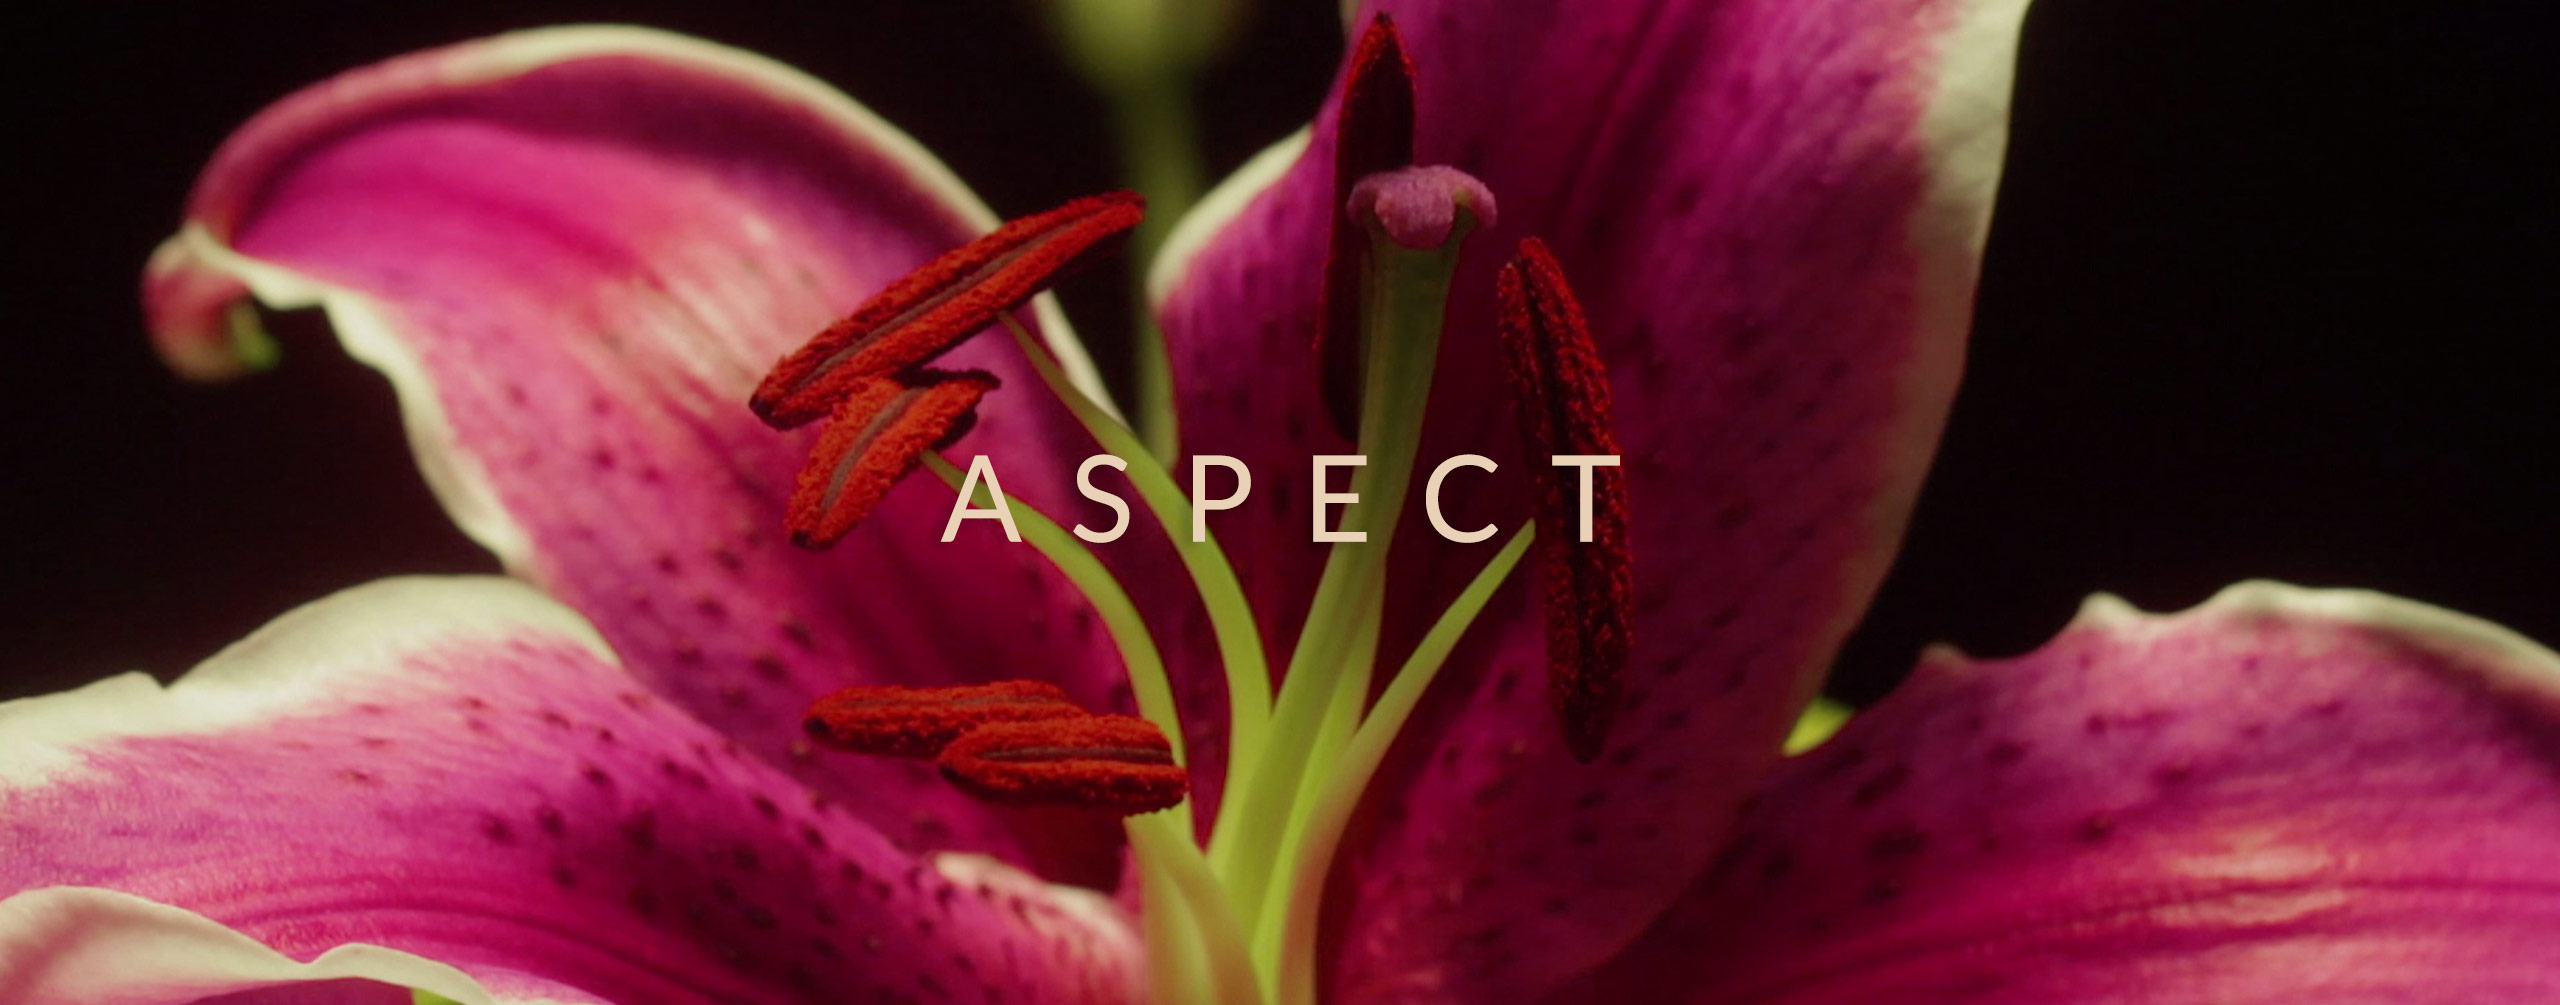 Aspect - Minimalist Graphic Elements